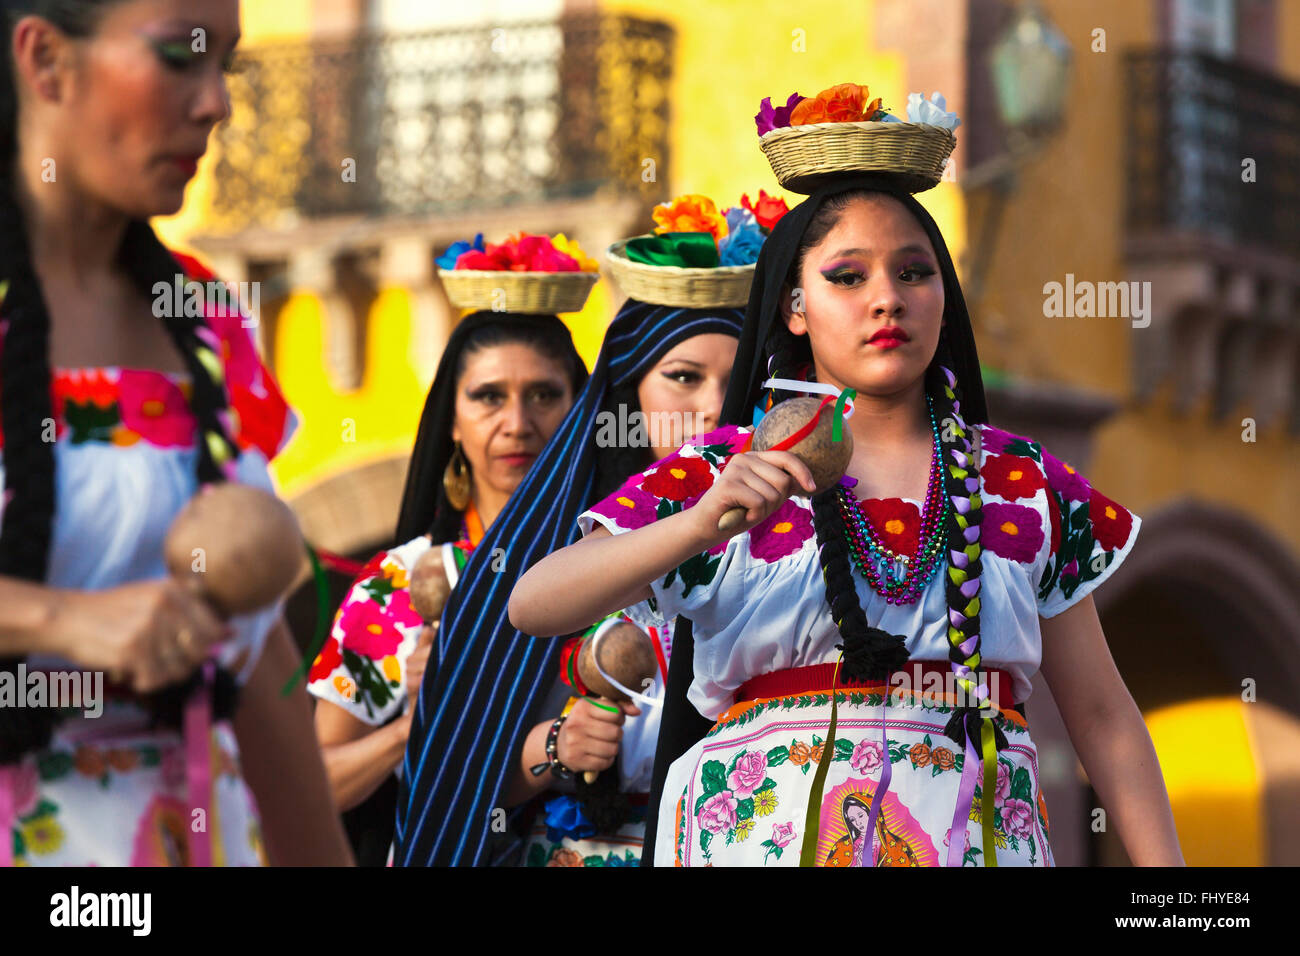 DANCERS perform in the Jardin or Central Square during the annual FOLK DANCE FESTIVAL - SAN MIGUEL DE ALLENDE, MEXICO - Stock Image